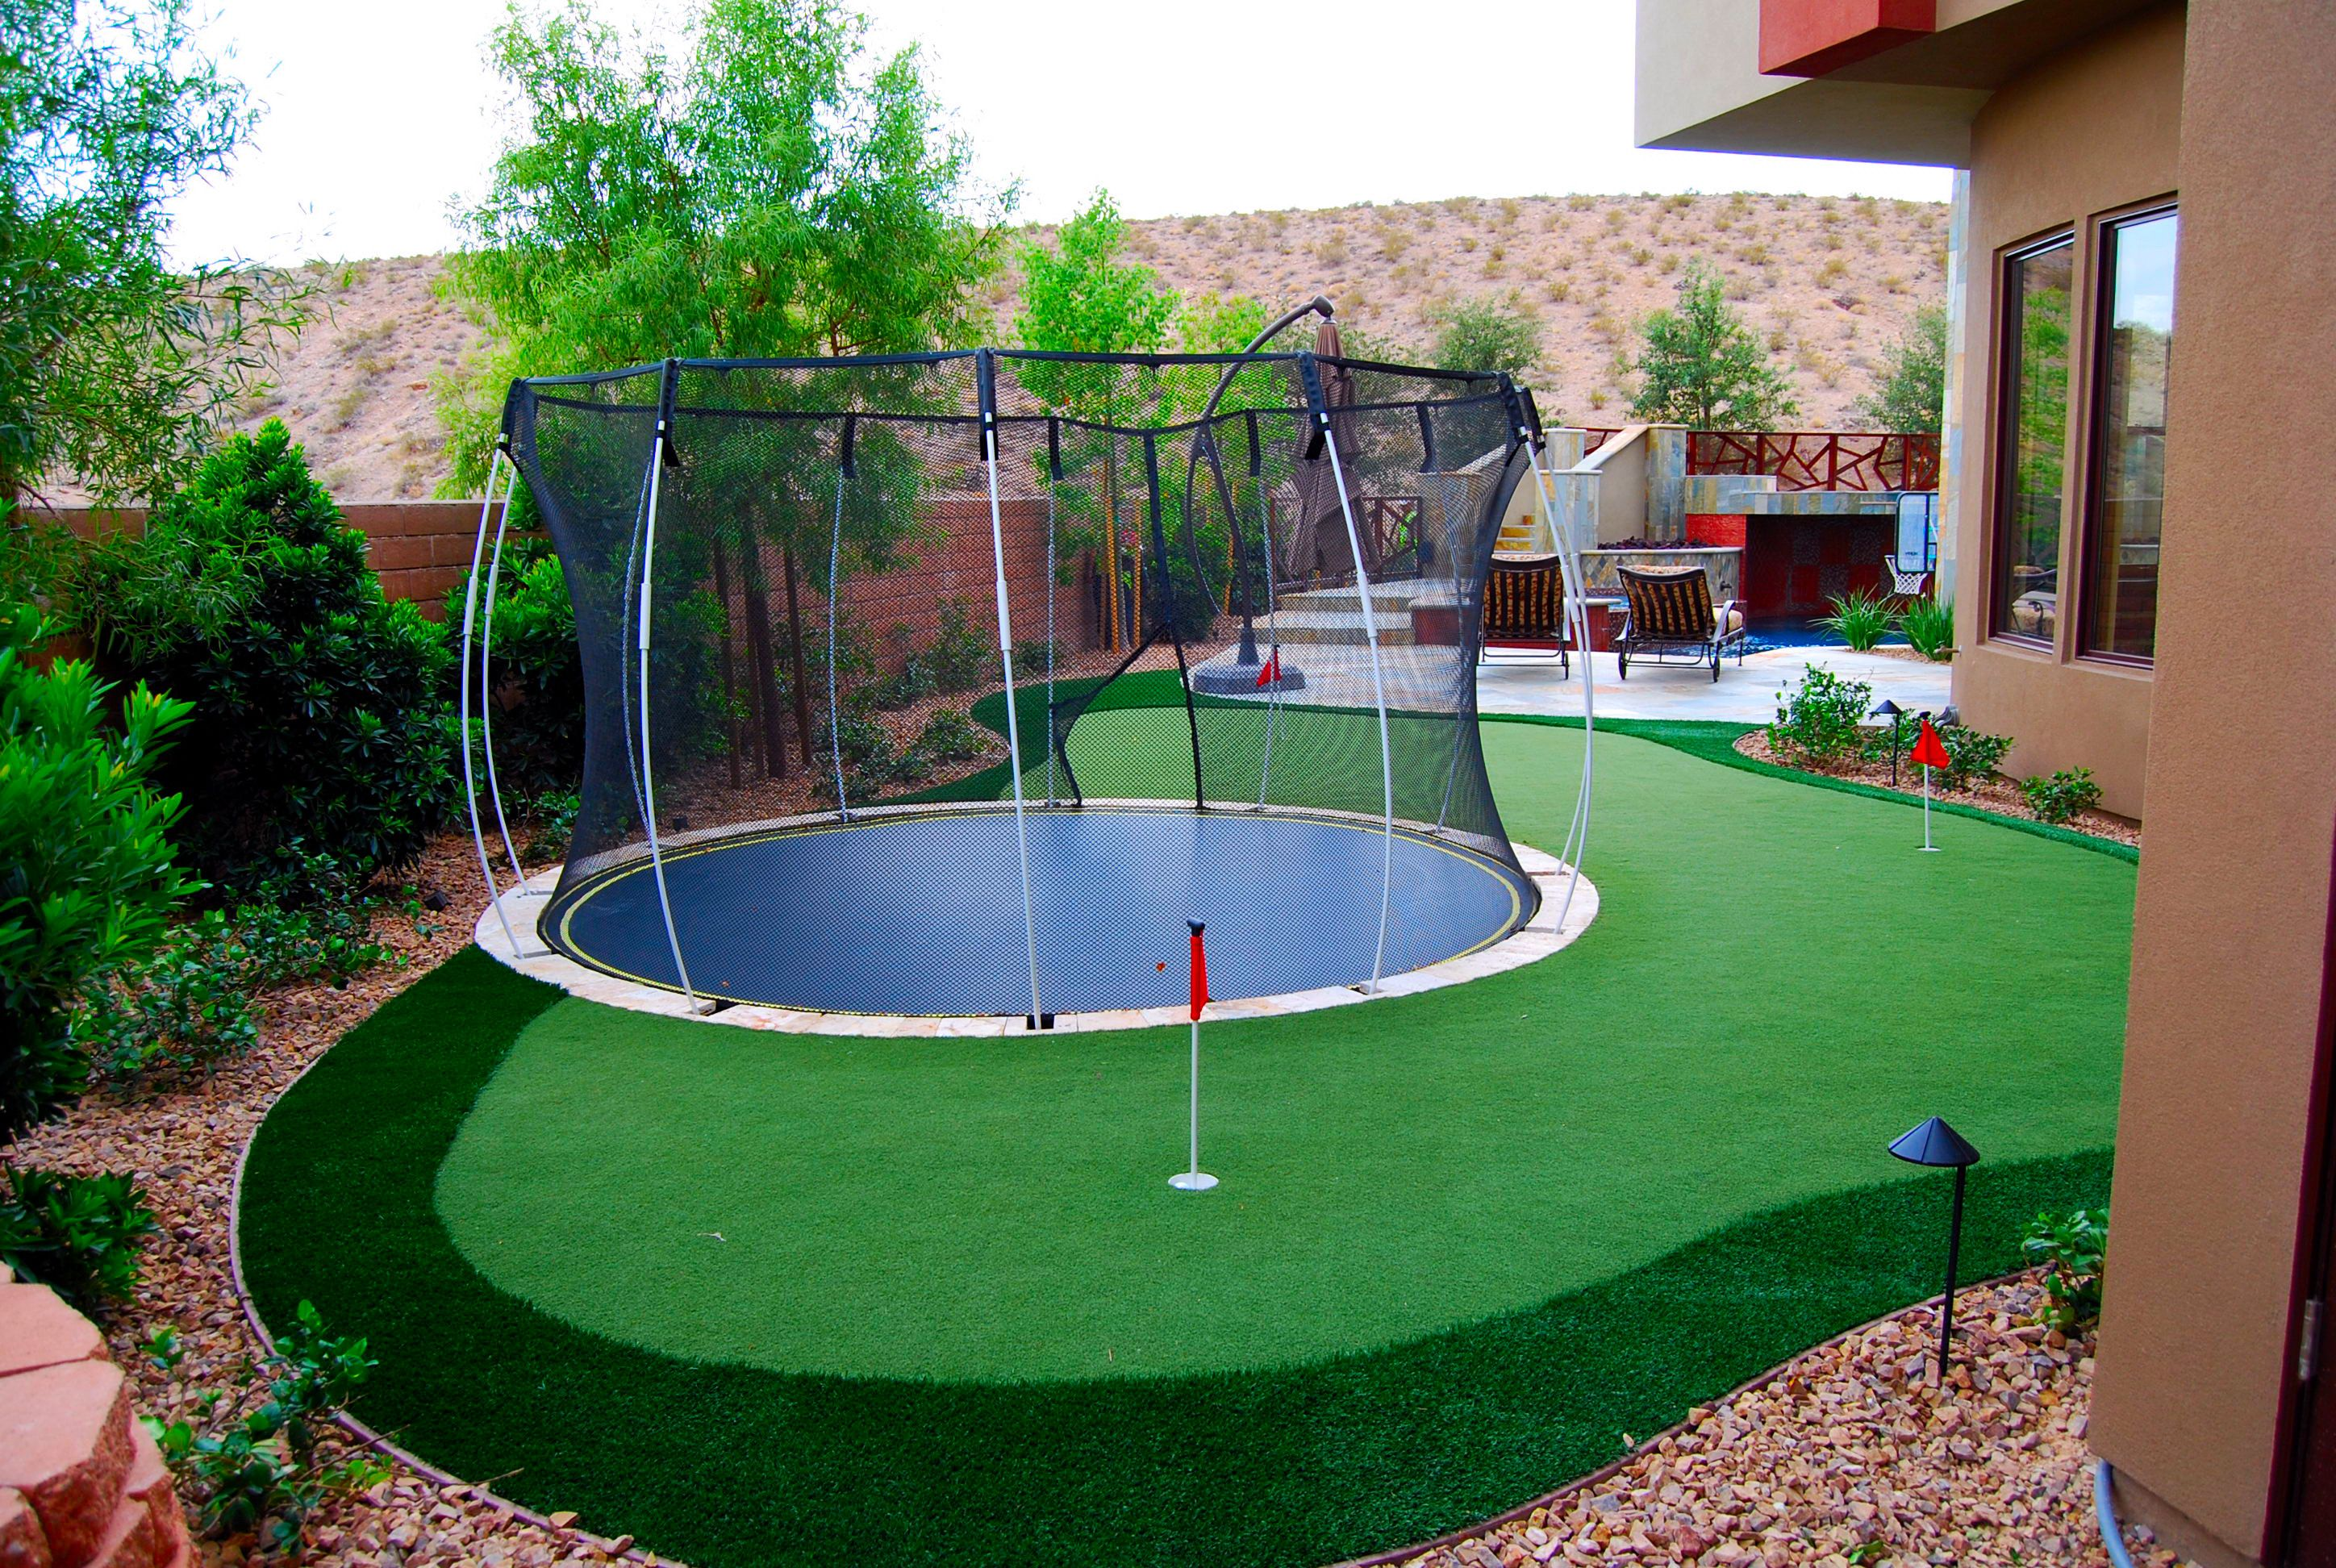 Backyard Putting Green With Sports Turn Integration For A Basketball